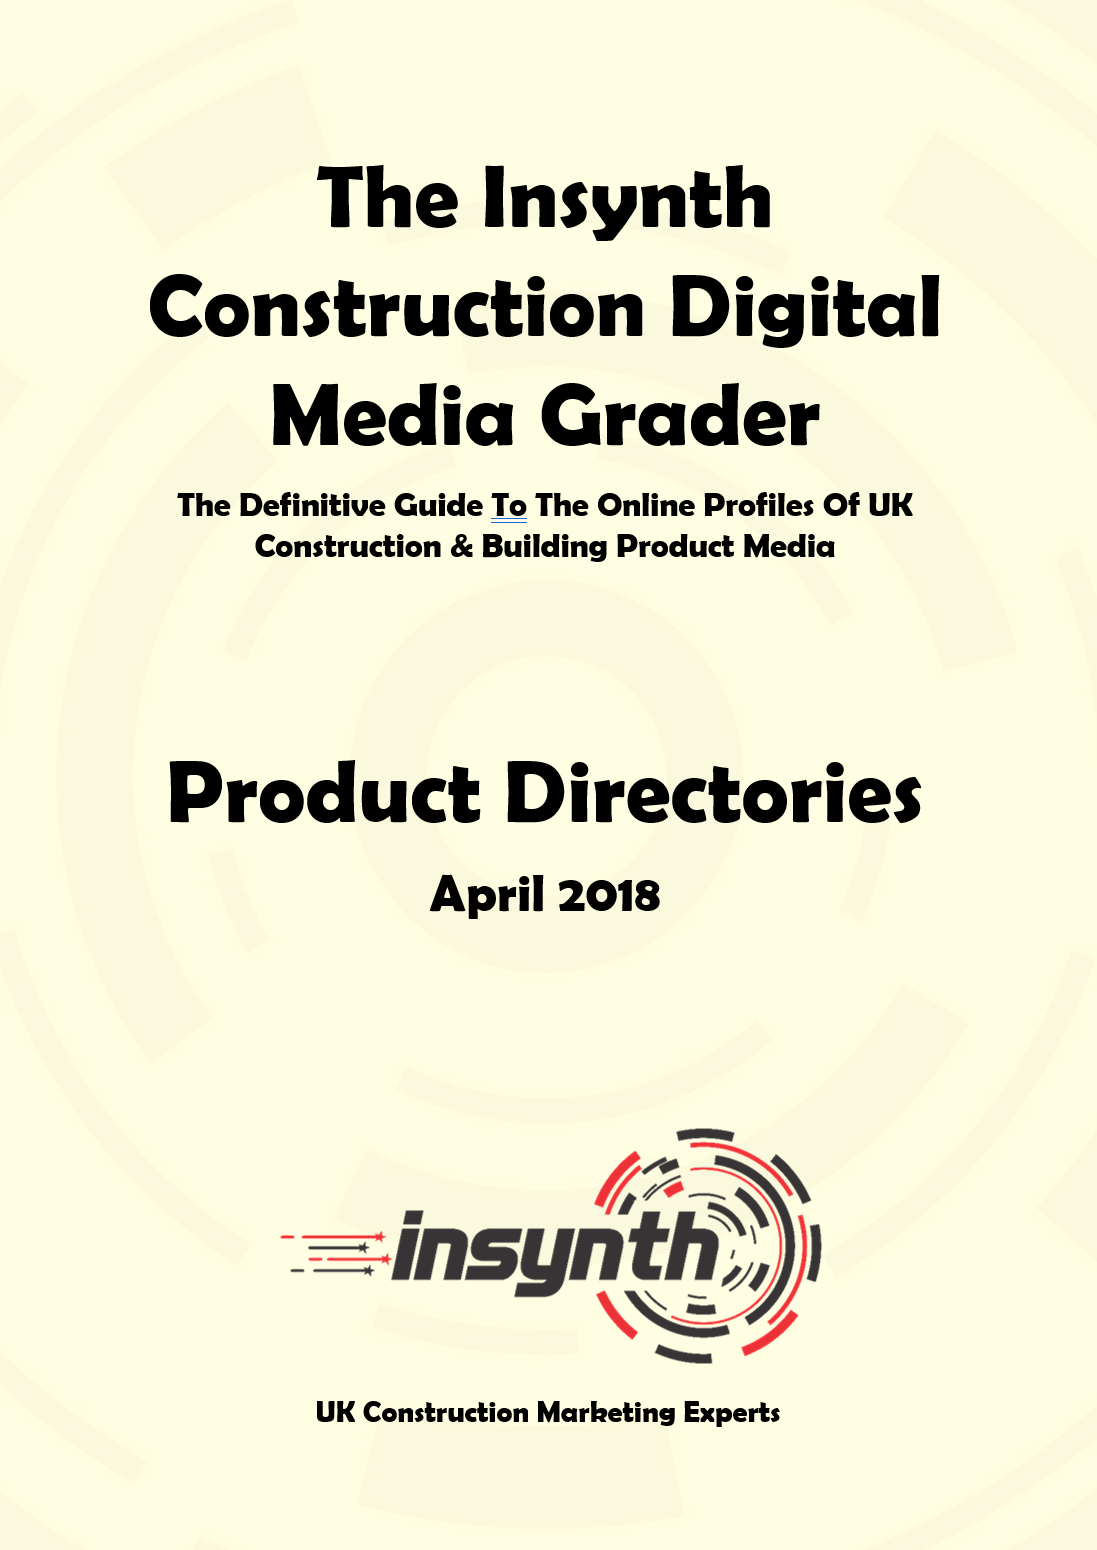 Construction Digital Media Grader Report - Product Directories